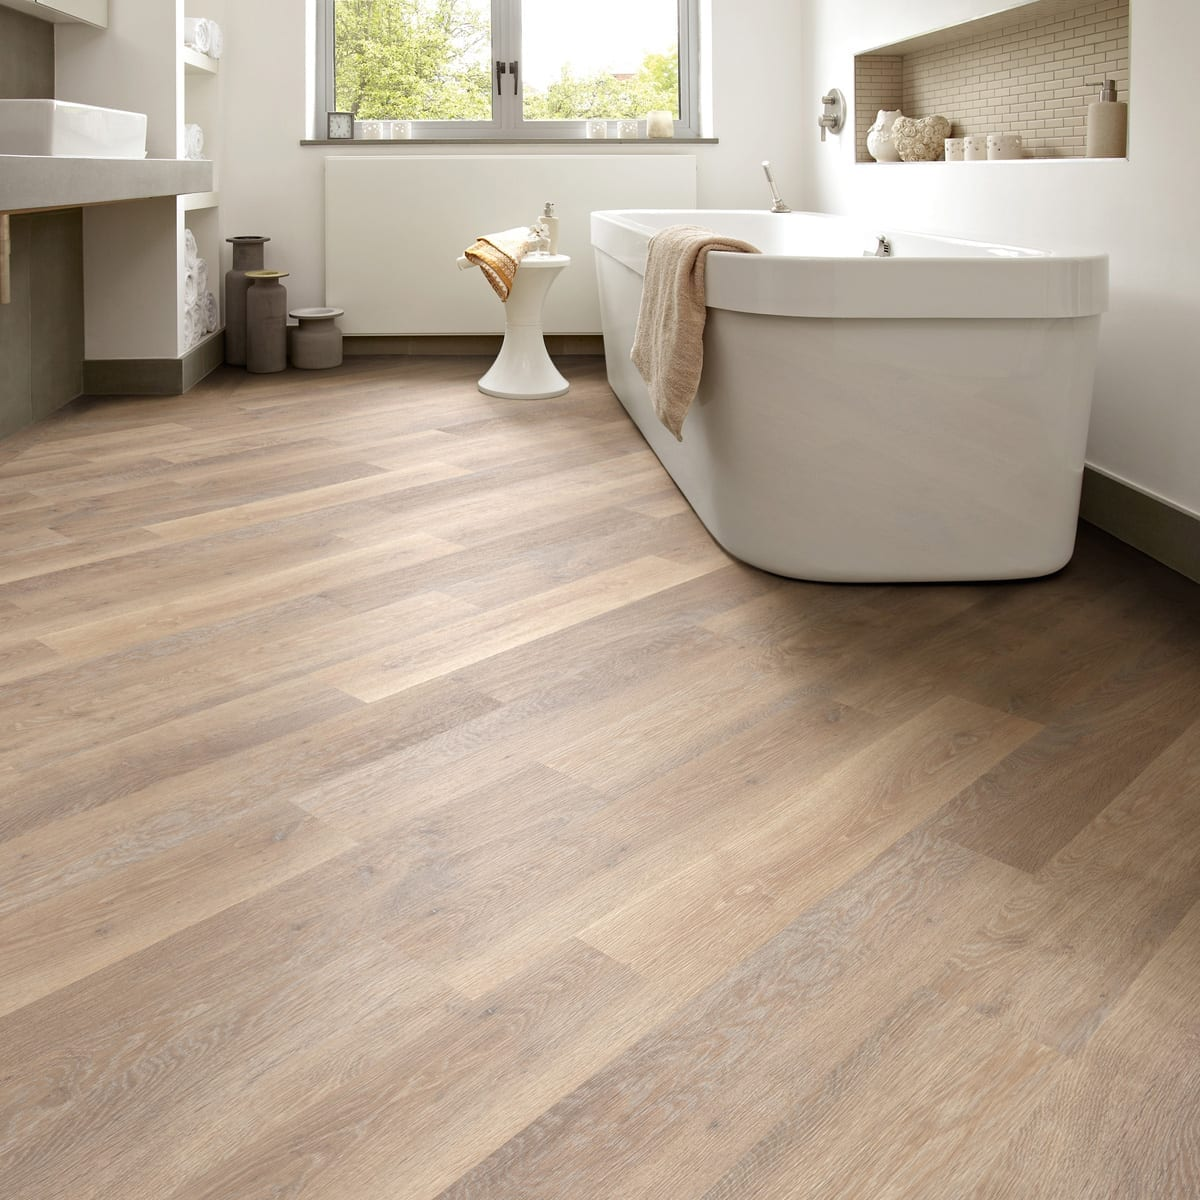 Karndean Rose Washed Oak